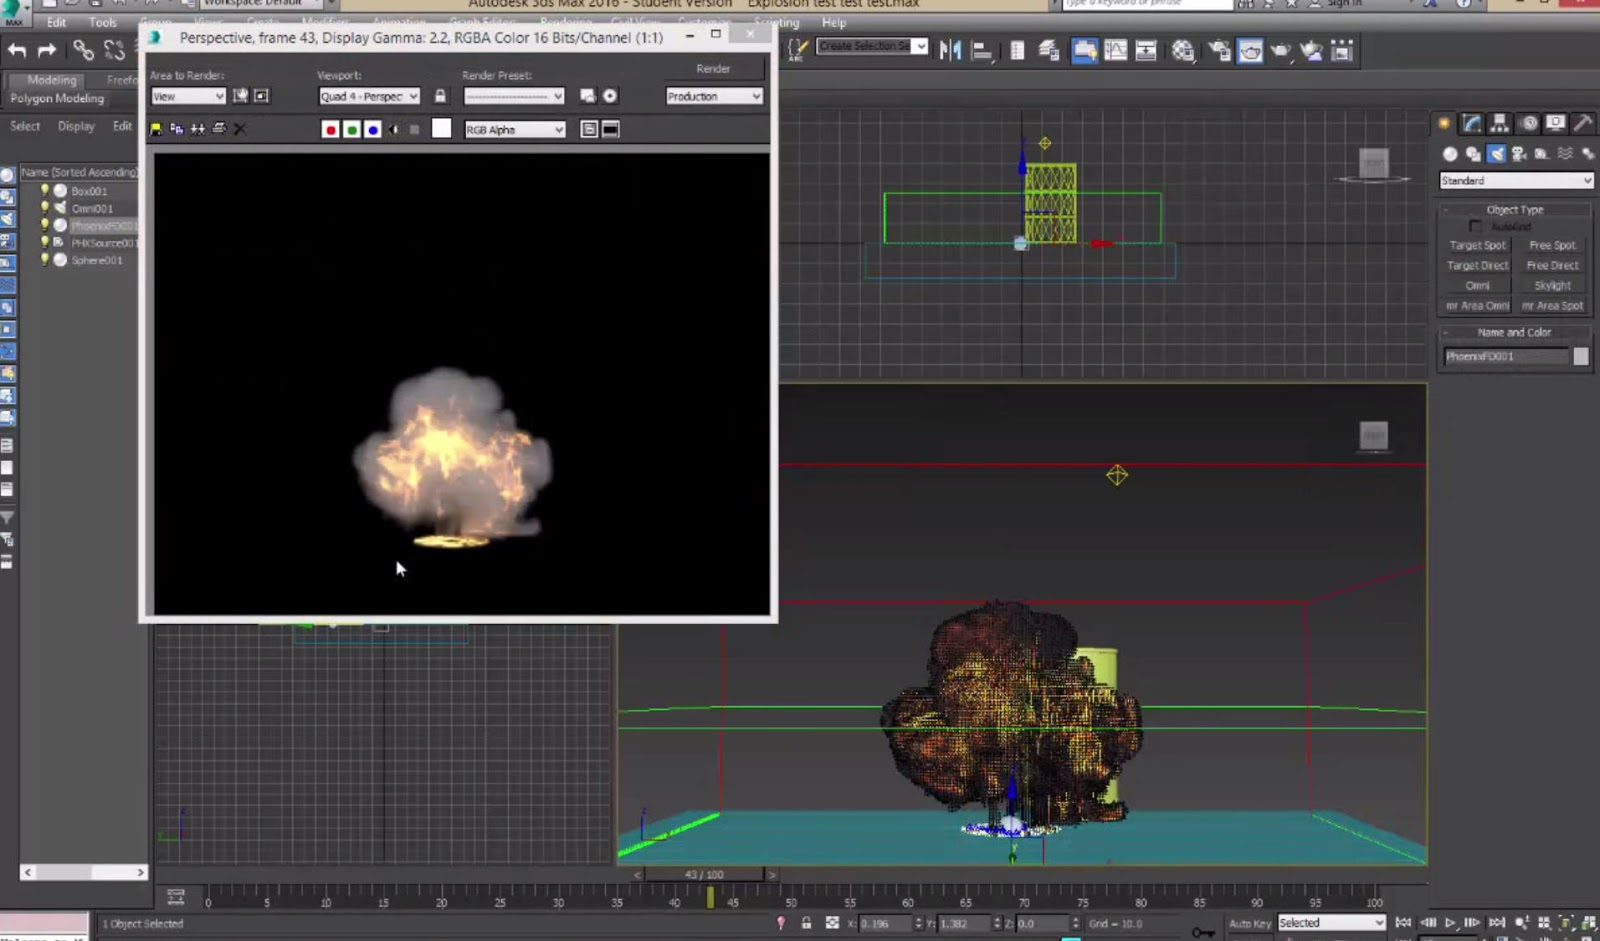 Phoenix fd for 3ds max basic tutorial creating an explosion cg phoenix fd for 3ds max basic tutorial creating an explosion malvernweather Choice Image